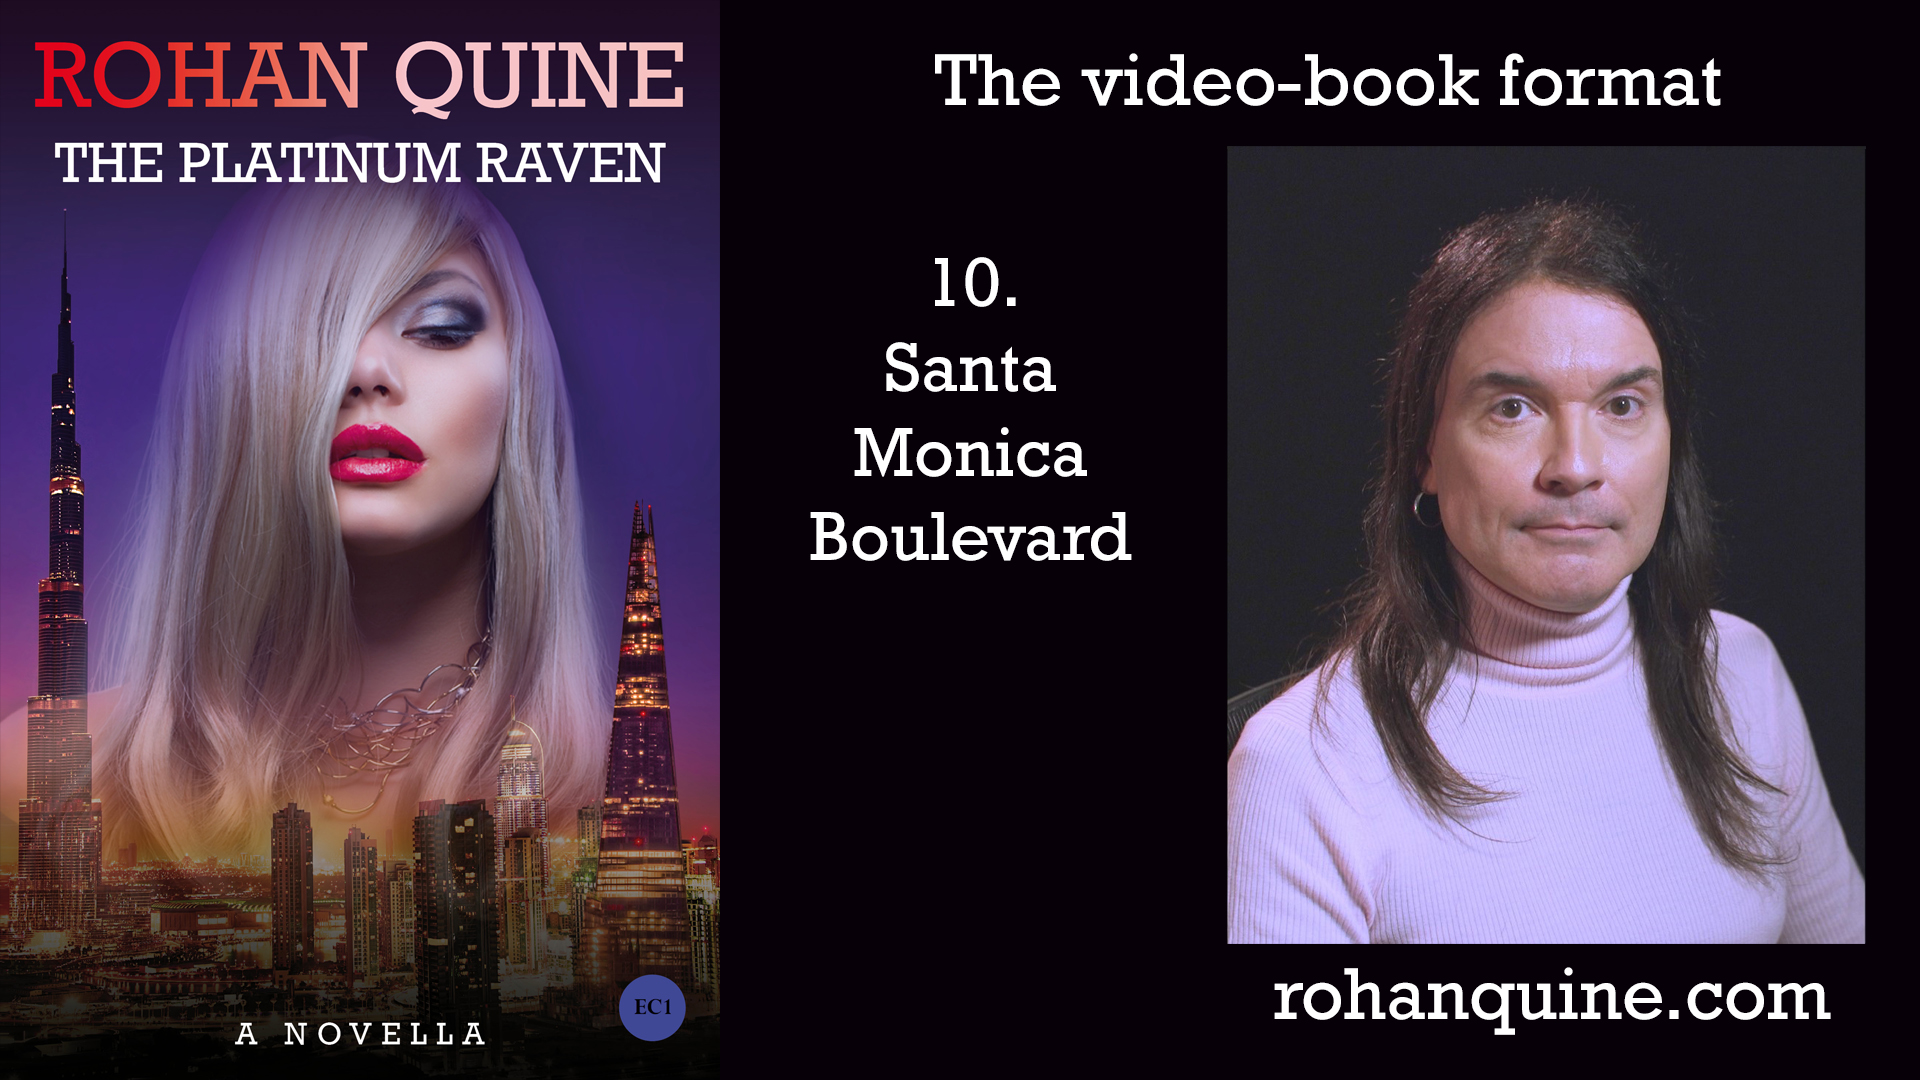 THE PLATINUM RAVEN by Rohan Quine - video-book format - chapter 10